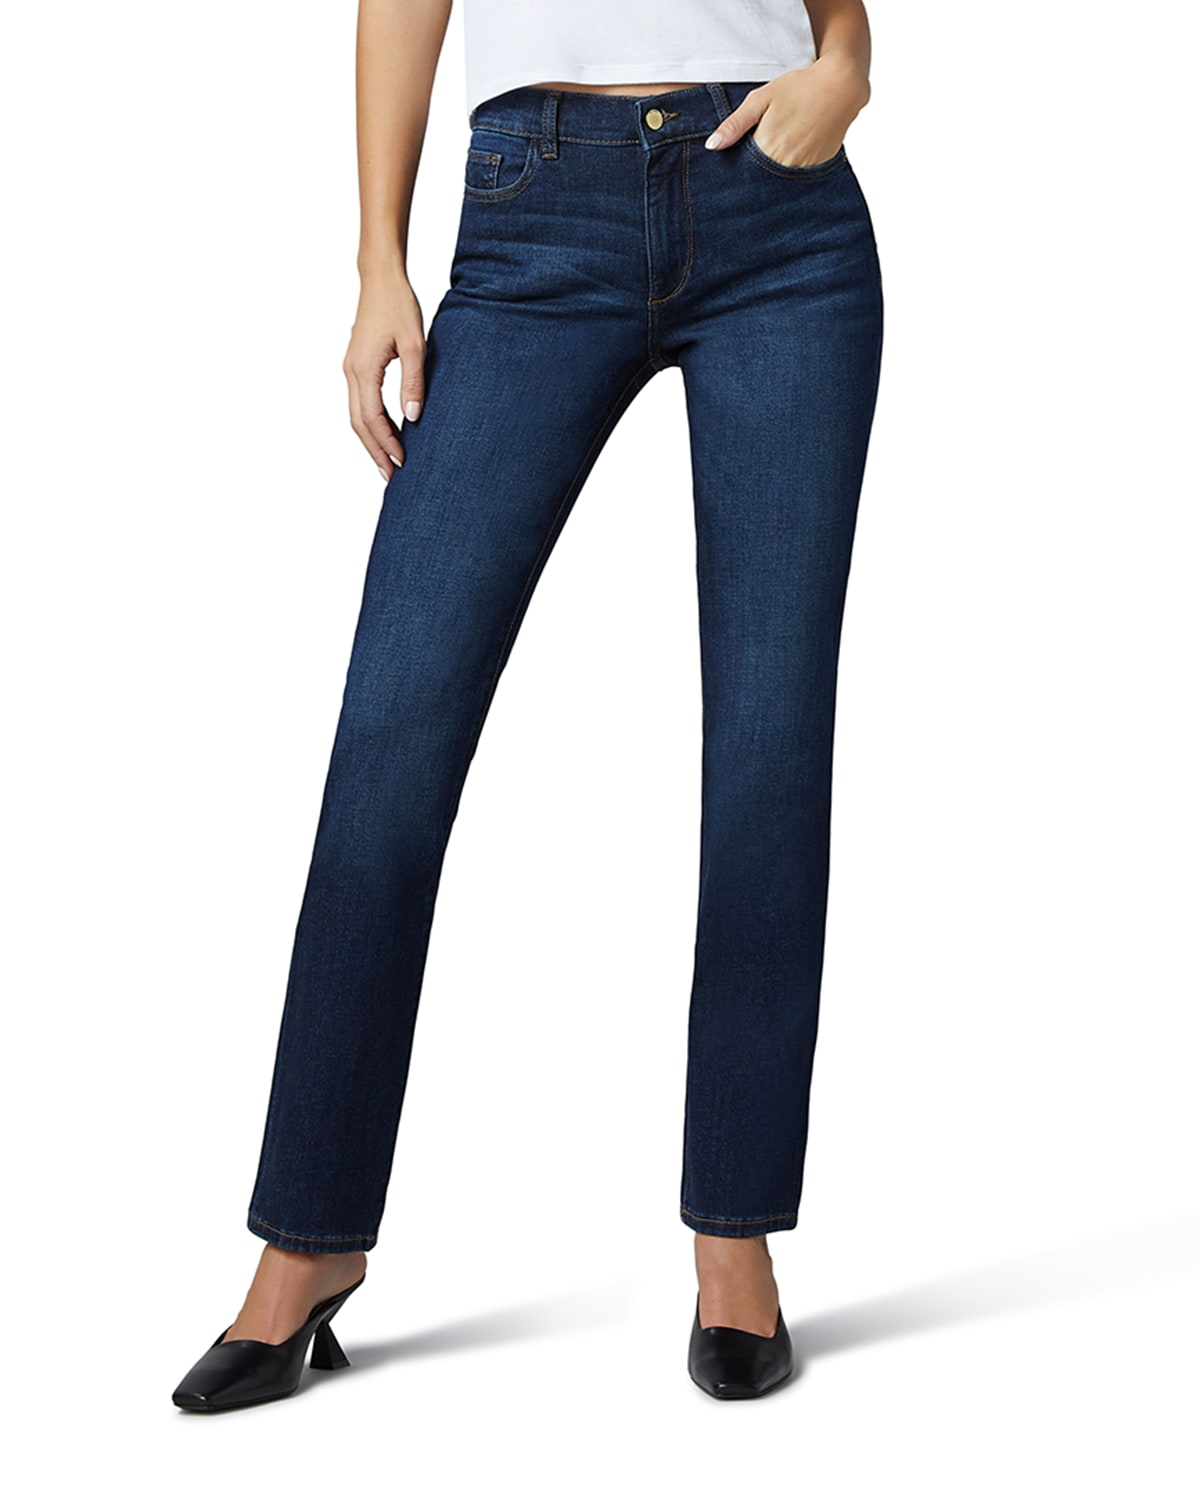 Coco Straight Mid-Rise Curvy Jeans